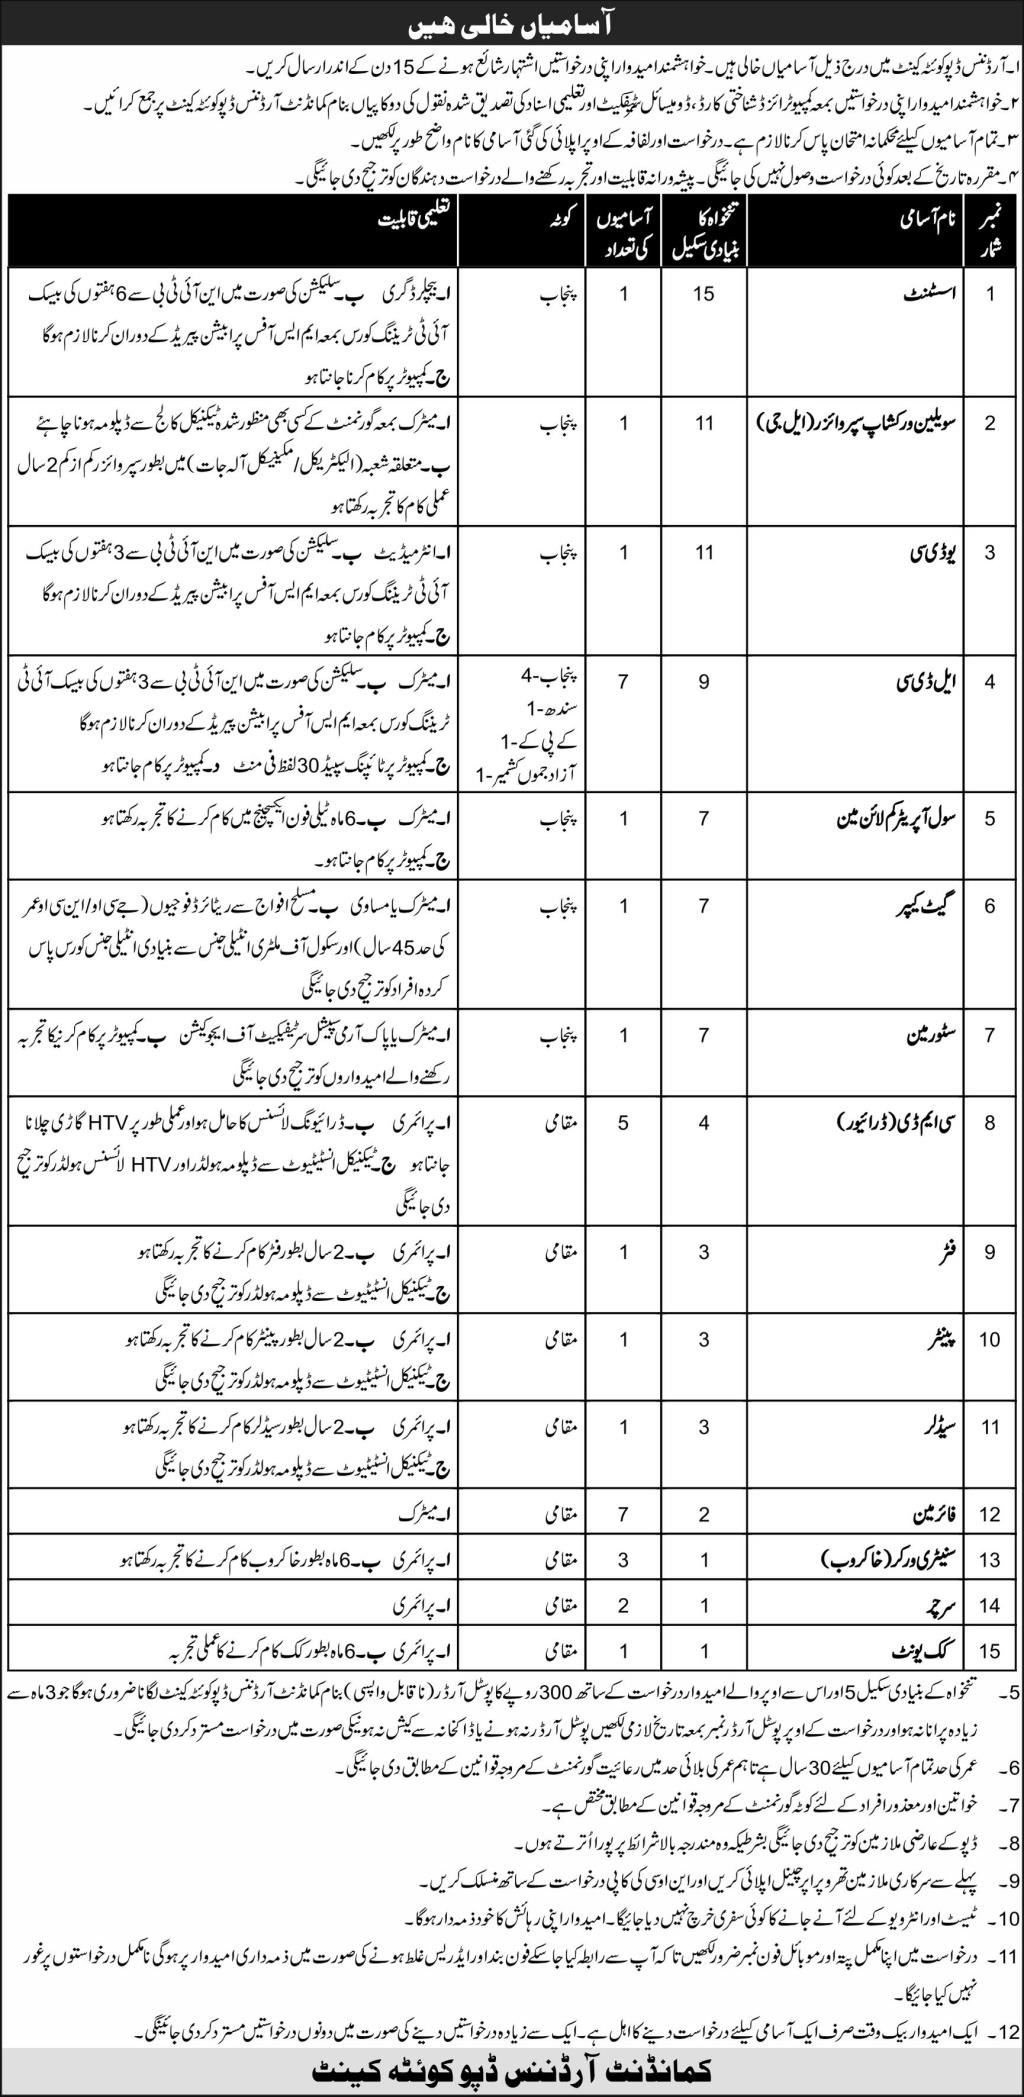 Pakistan Army Central Ordnance Depot Job Advertisement in Pakistan Jobs 2021-2022